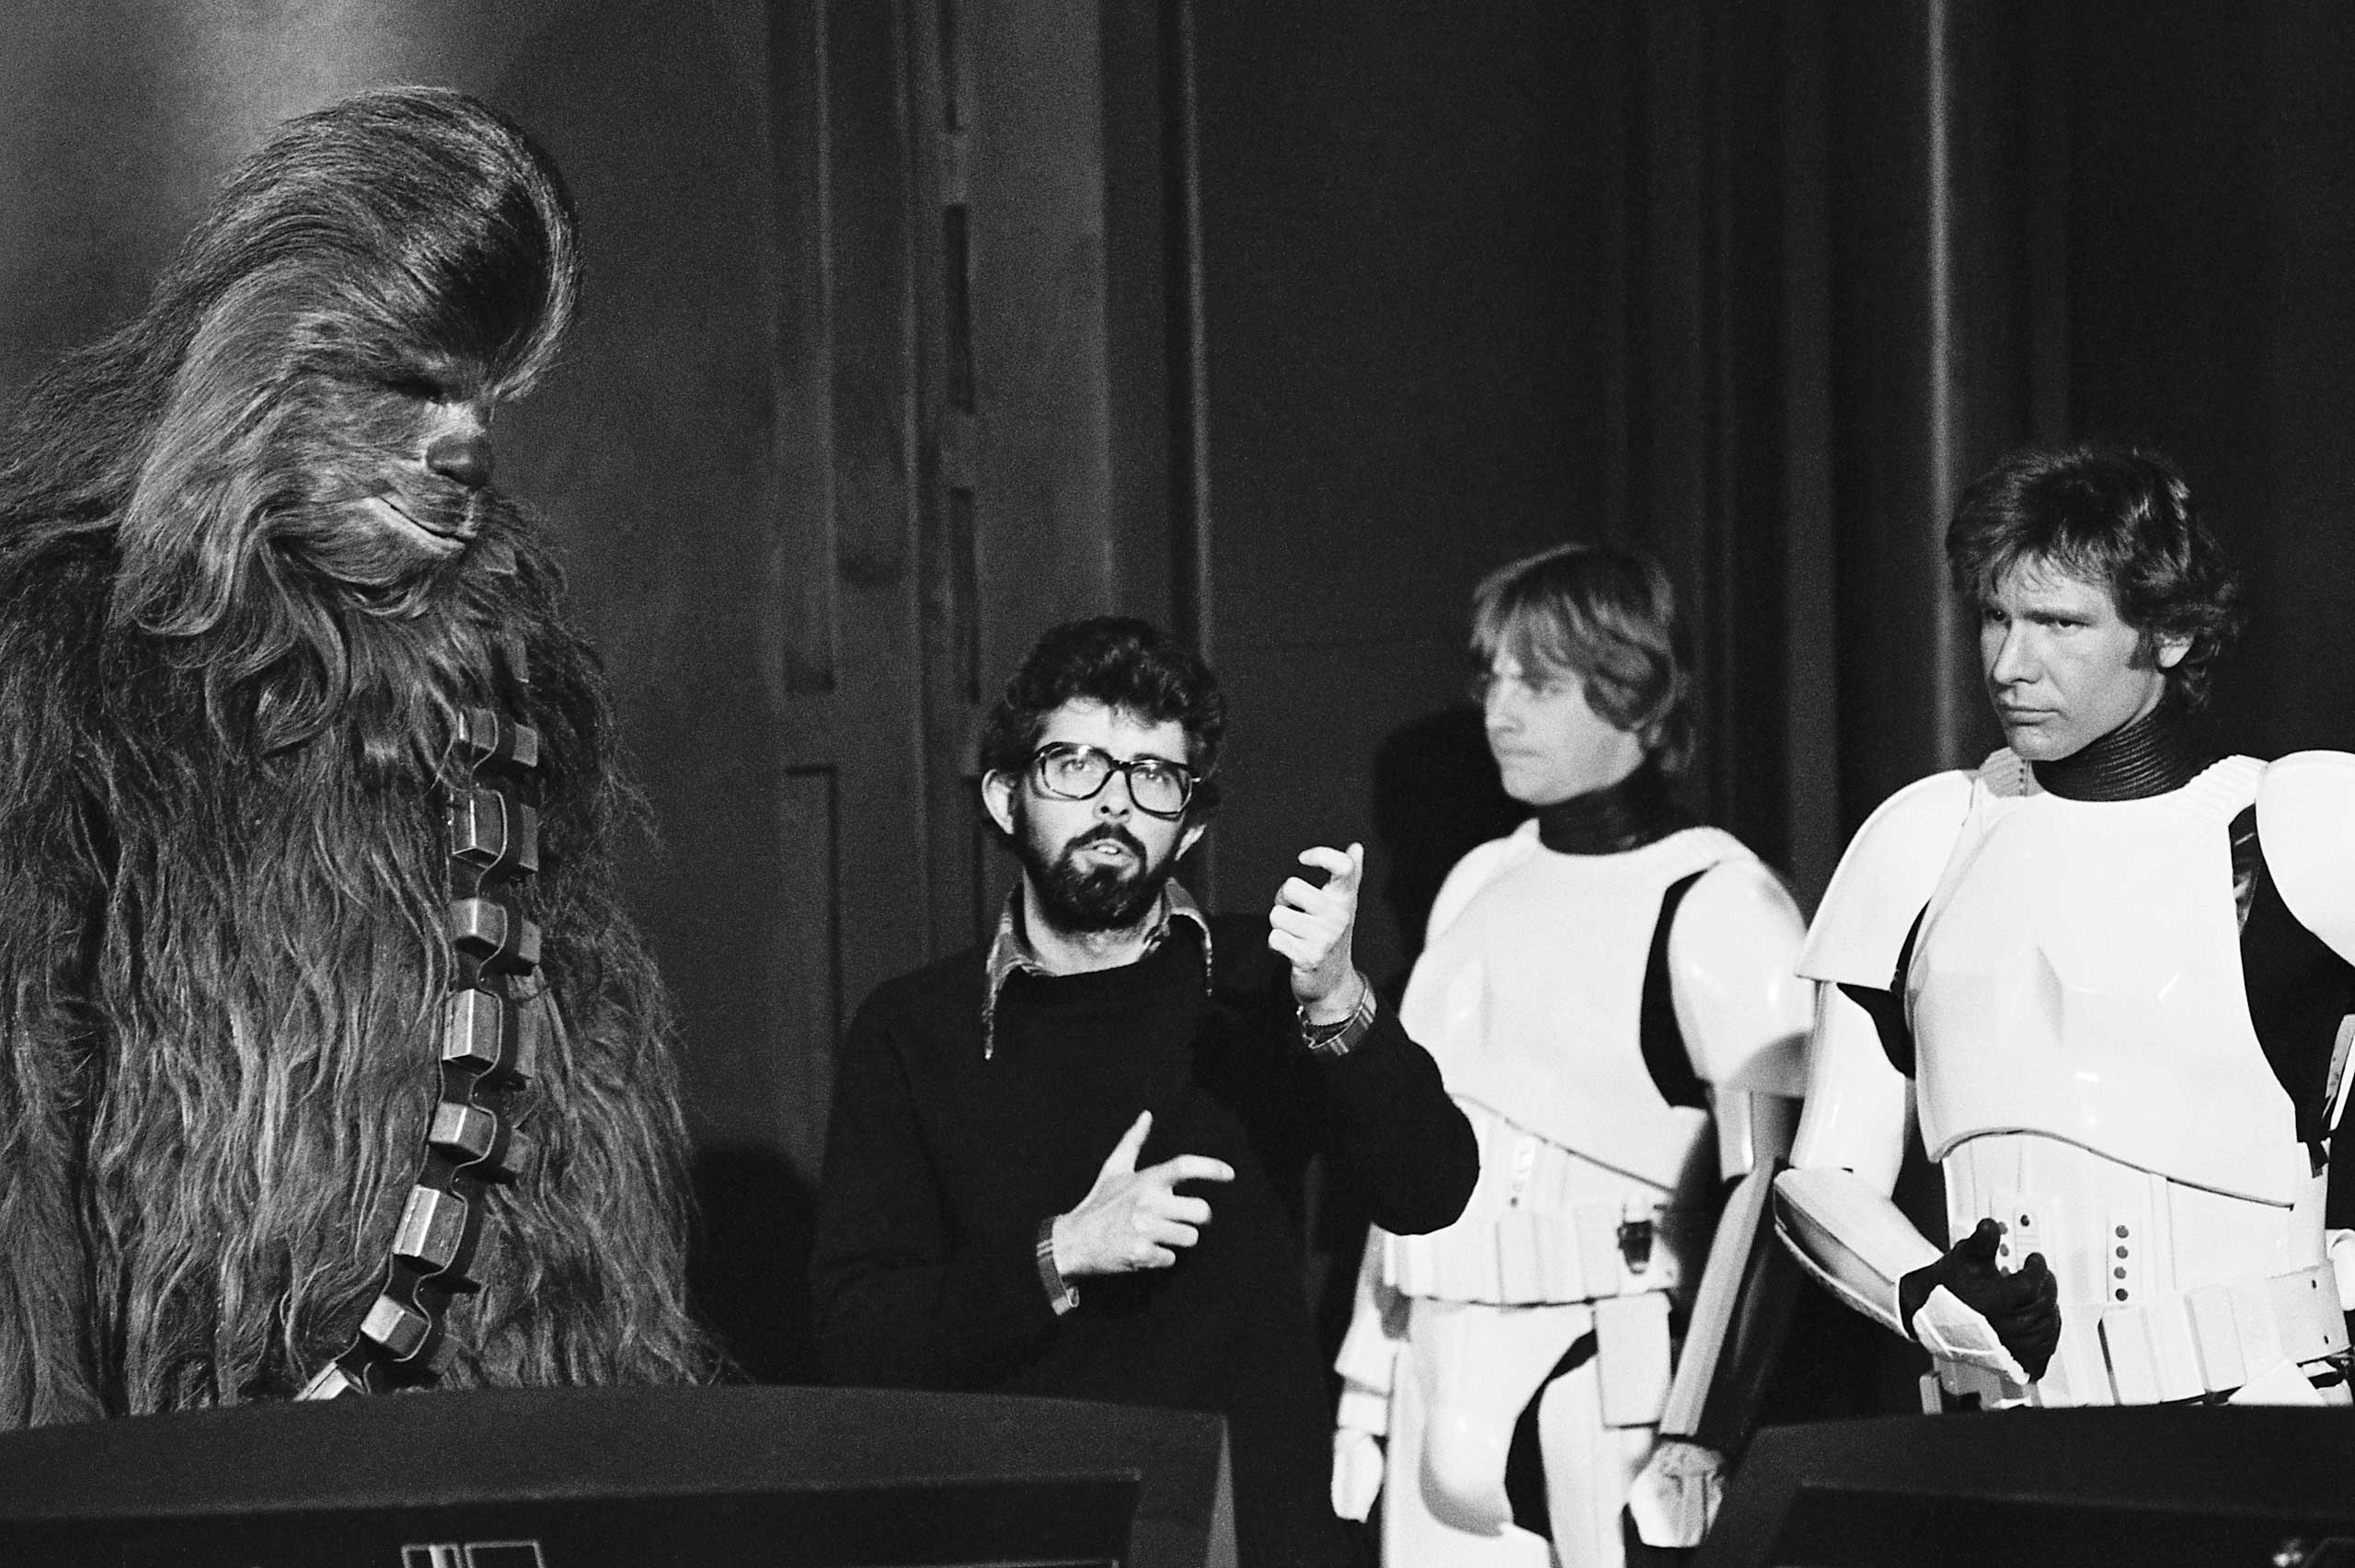 Lucas with Peter Mayhew (Chewbacca), along with Hamill and Ford on the set of Episode IV.